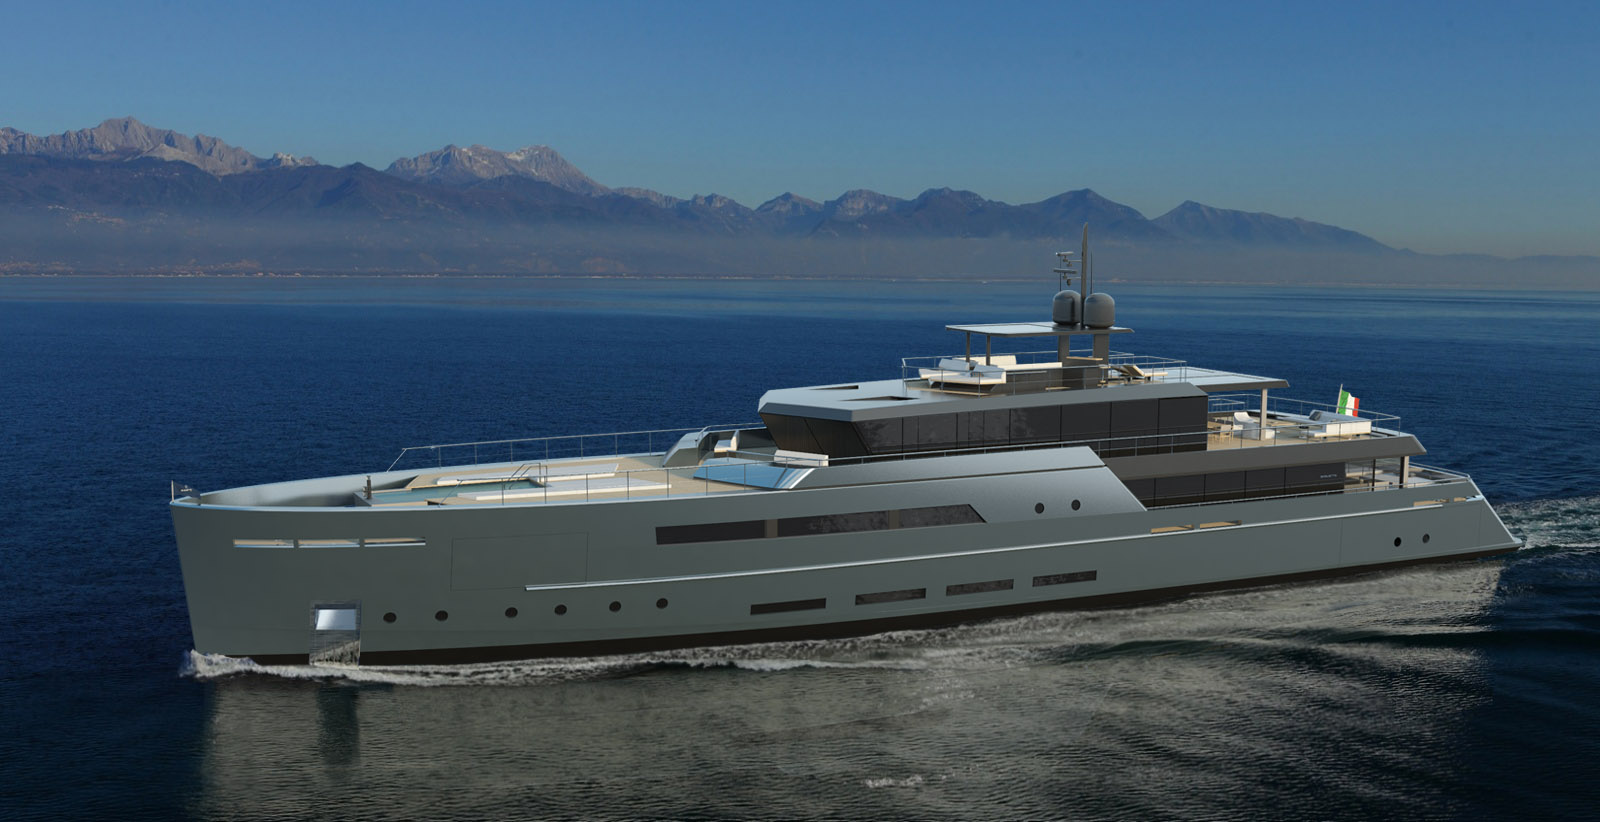 Baglietto introduces a new 55M project by Santa Maria Magnolfi